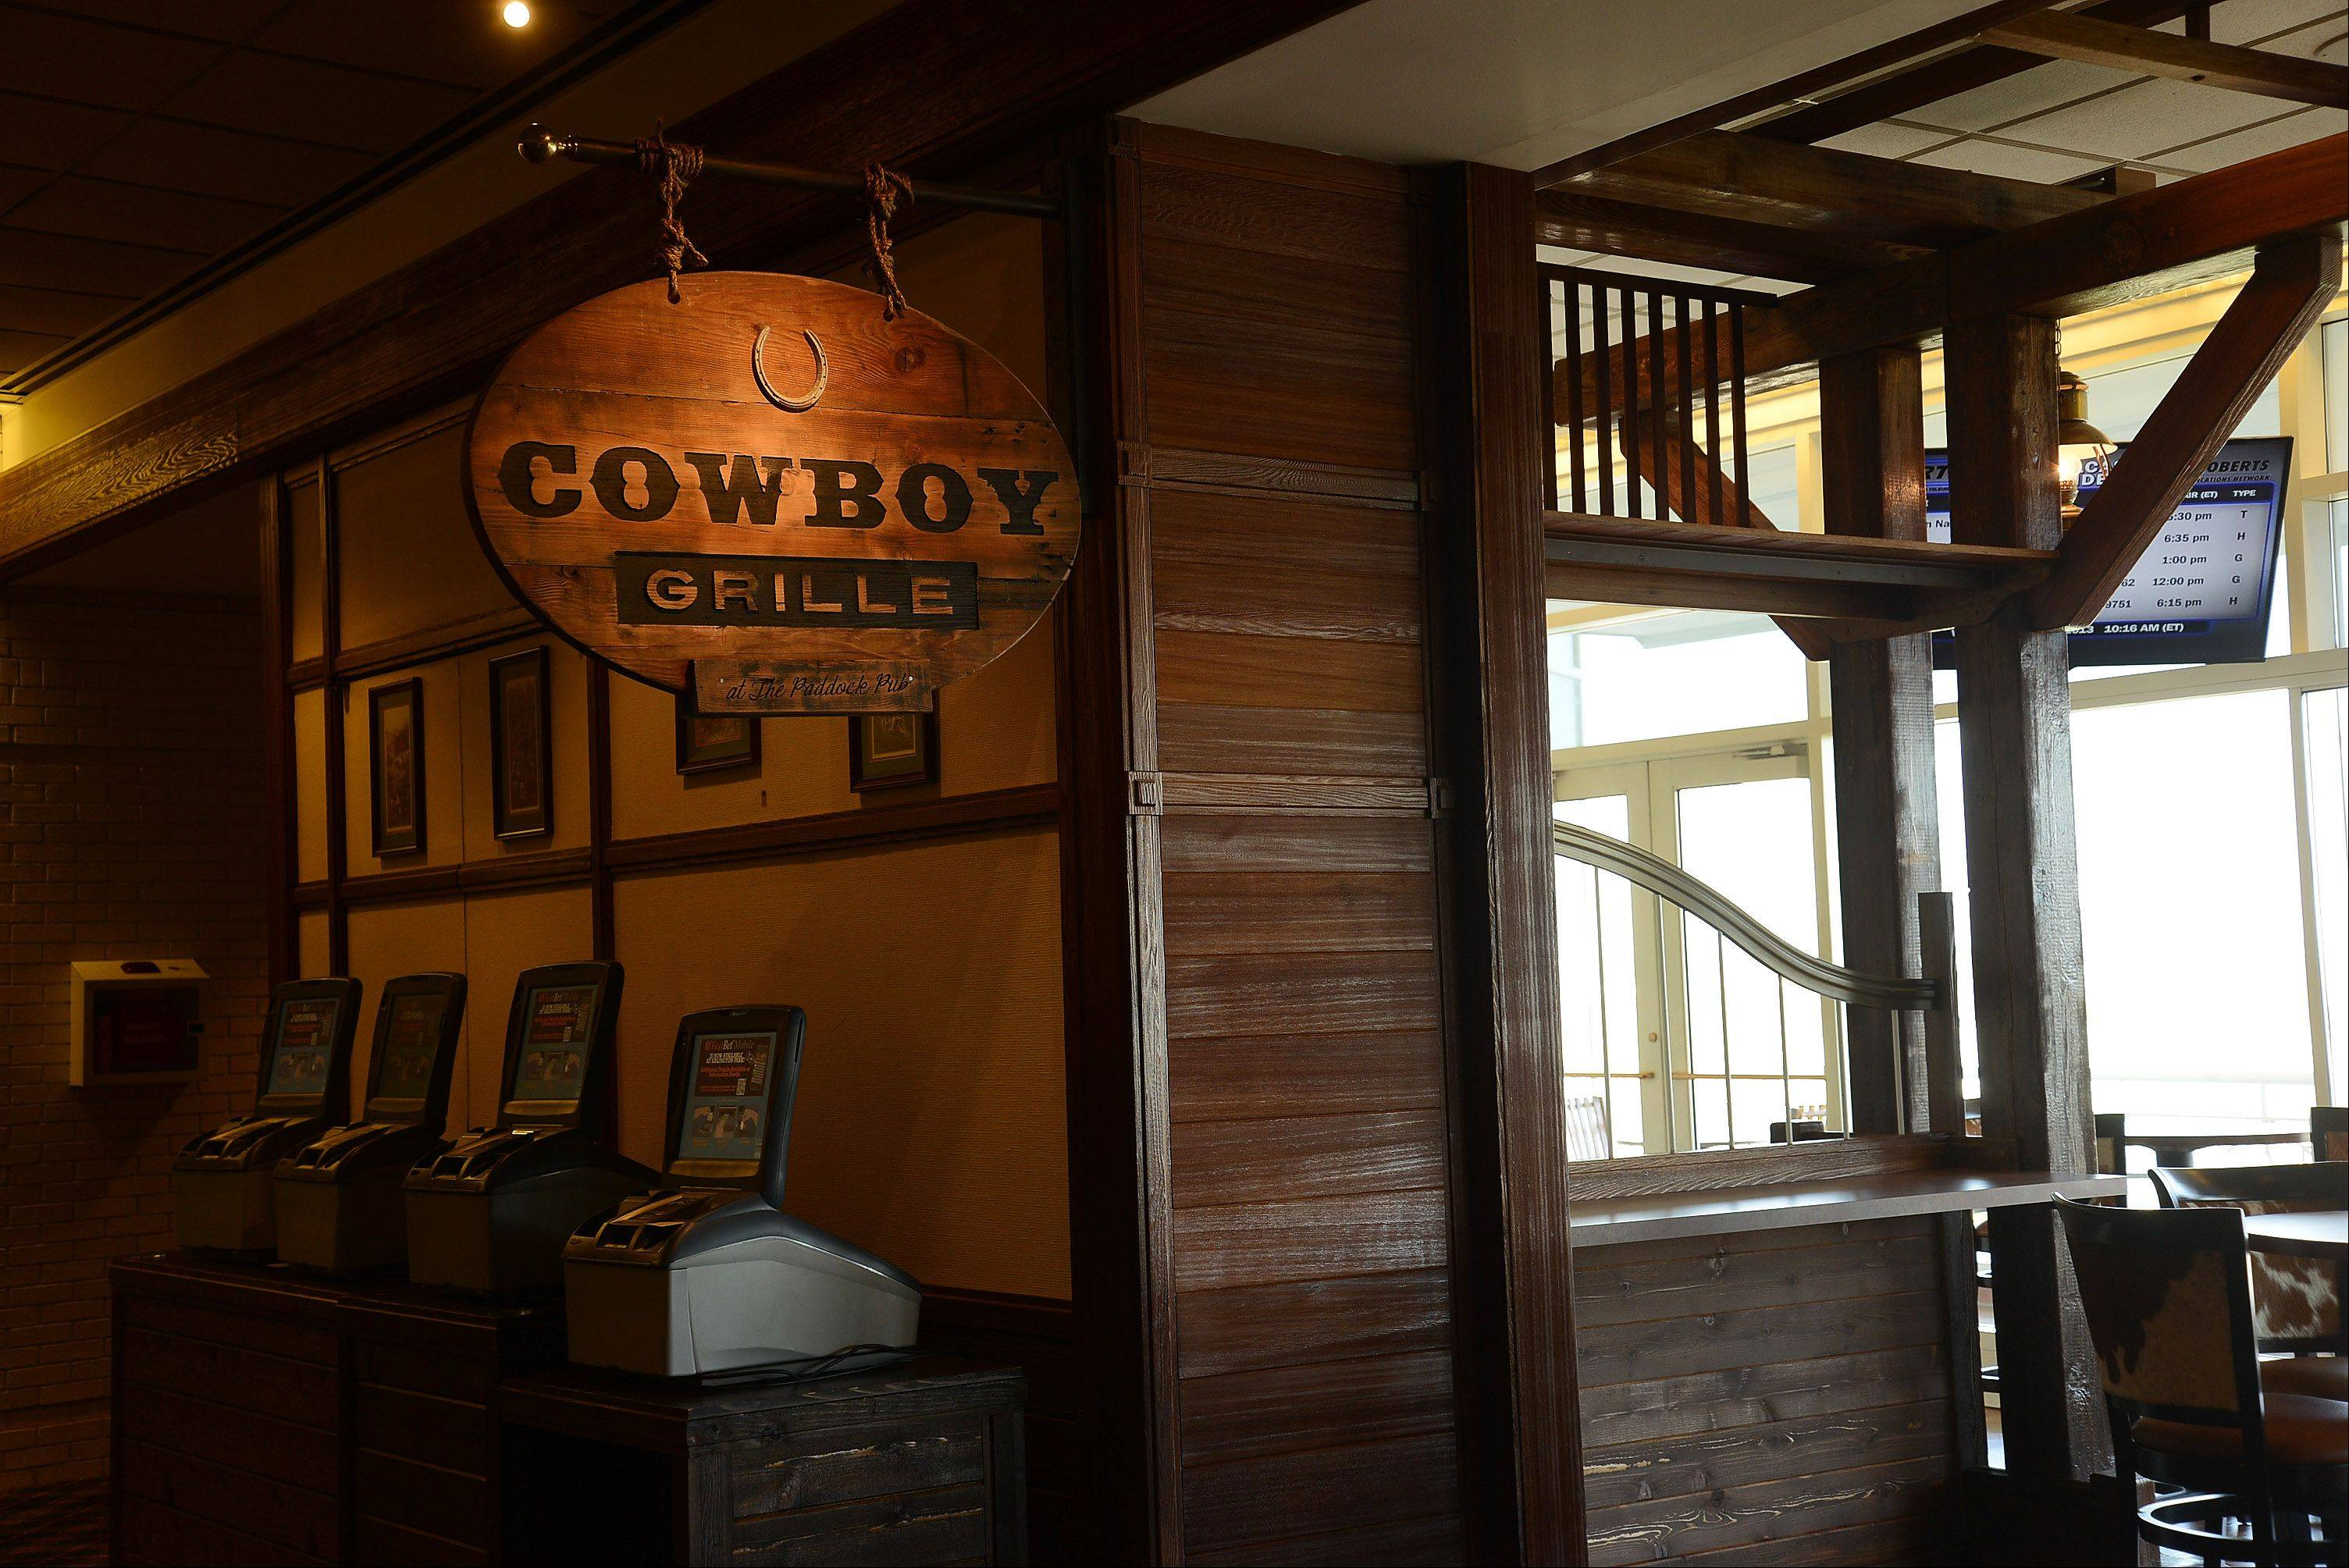 The new Cowboy Grille, which replaces the Paddock Pub this season, is ready for opening day at Arlington International Racecourse.